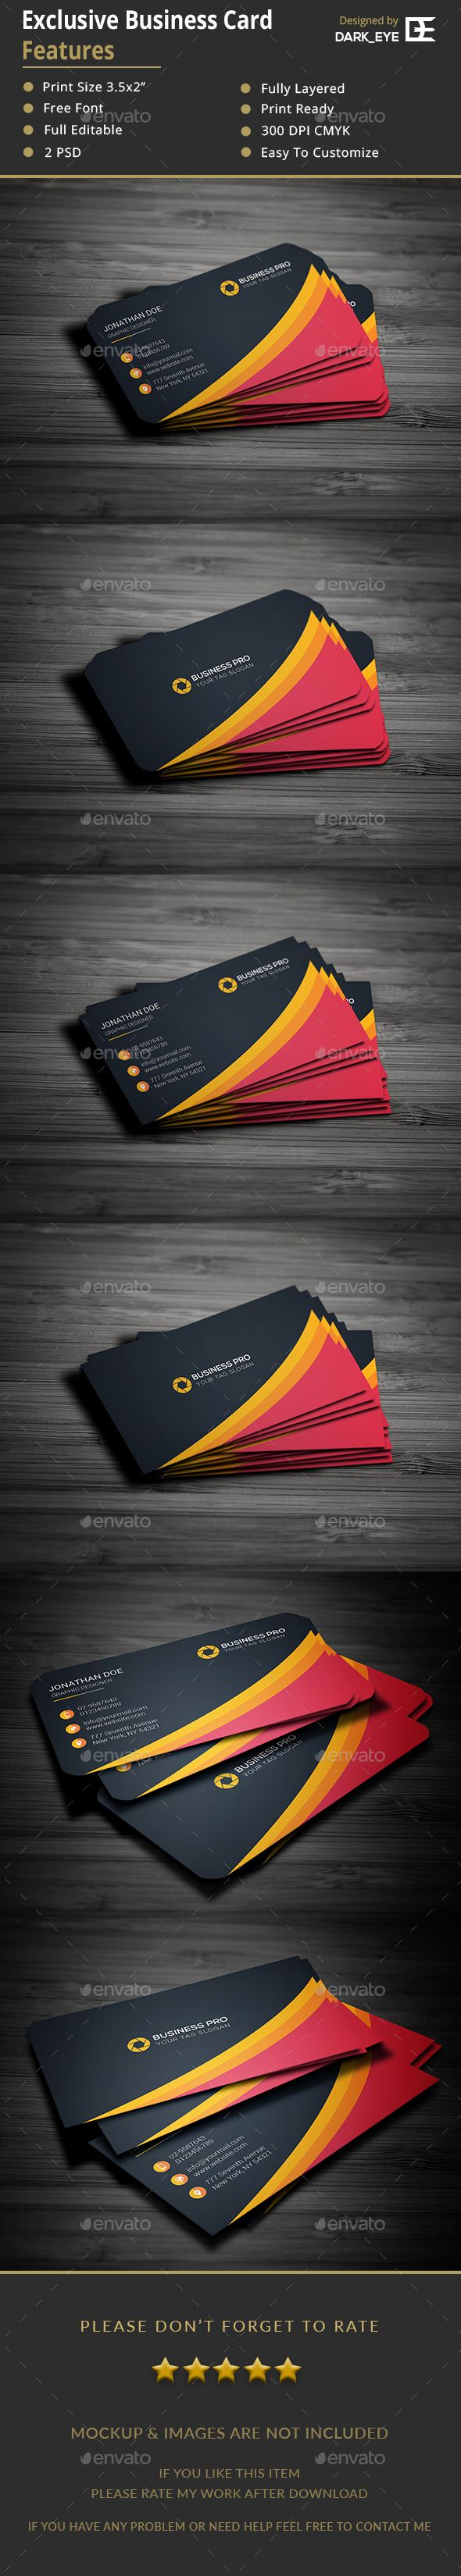 95 best visiting card images on pinterest